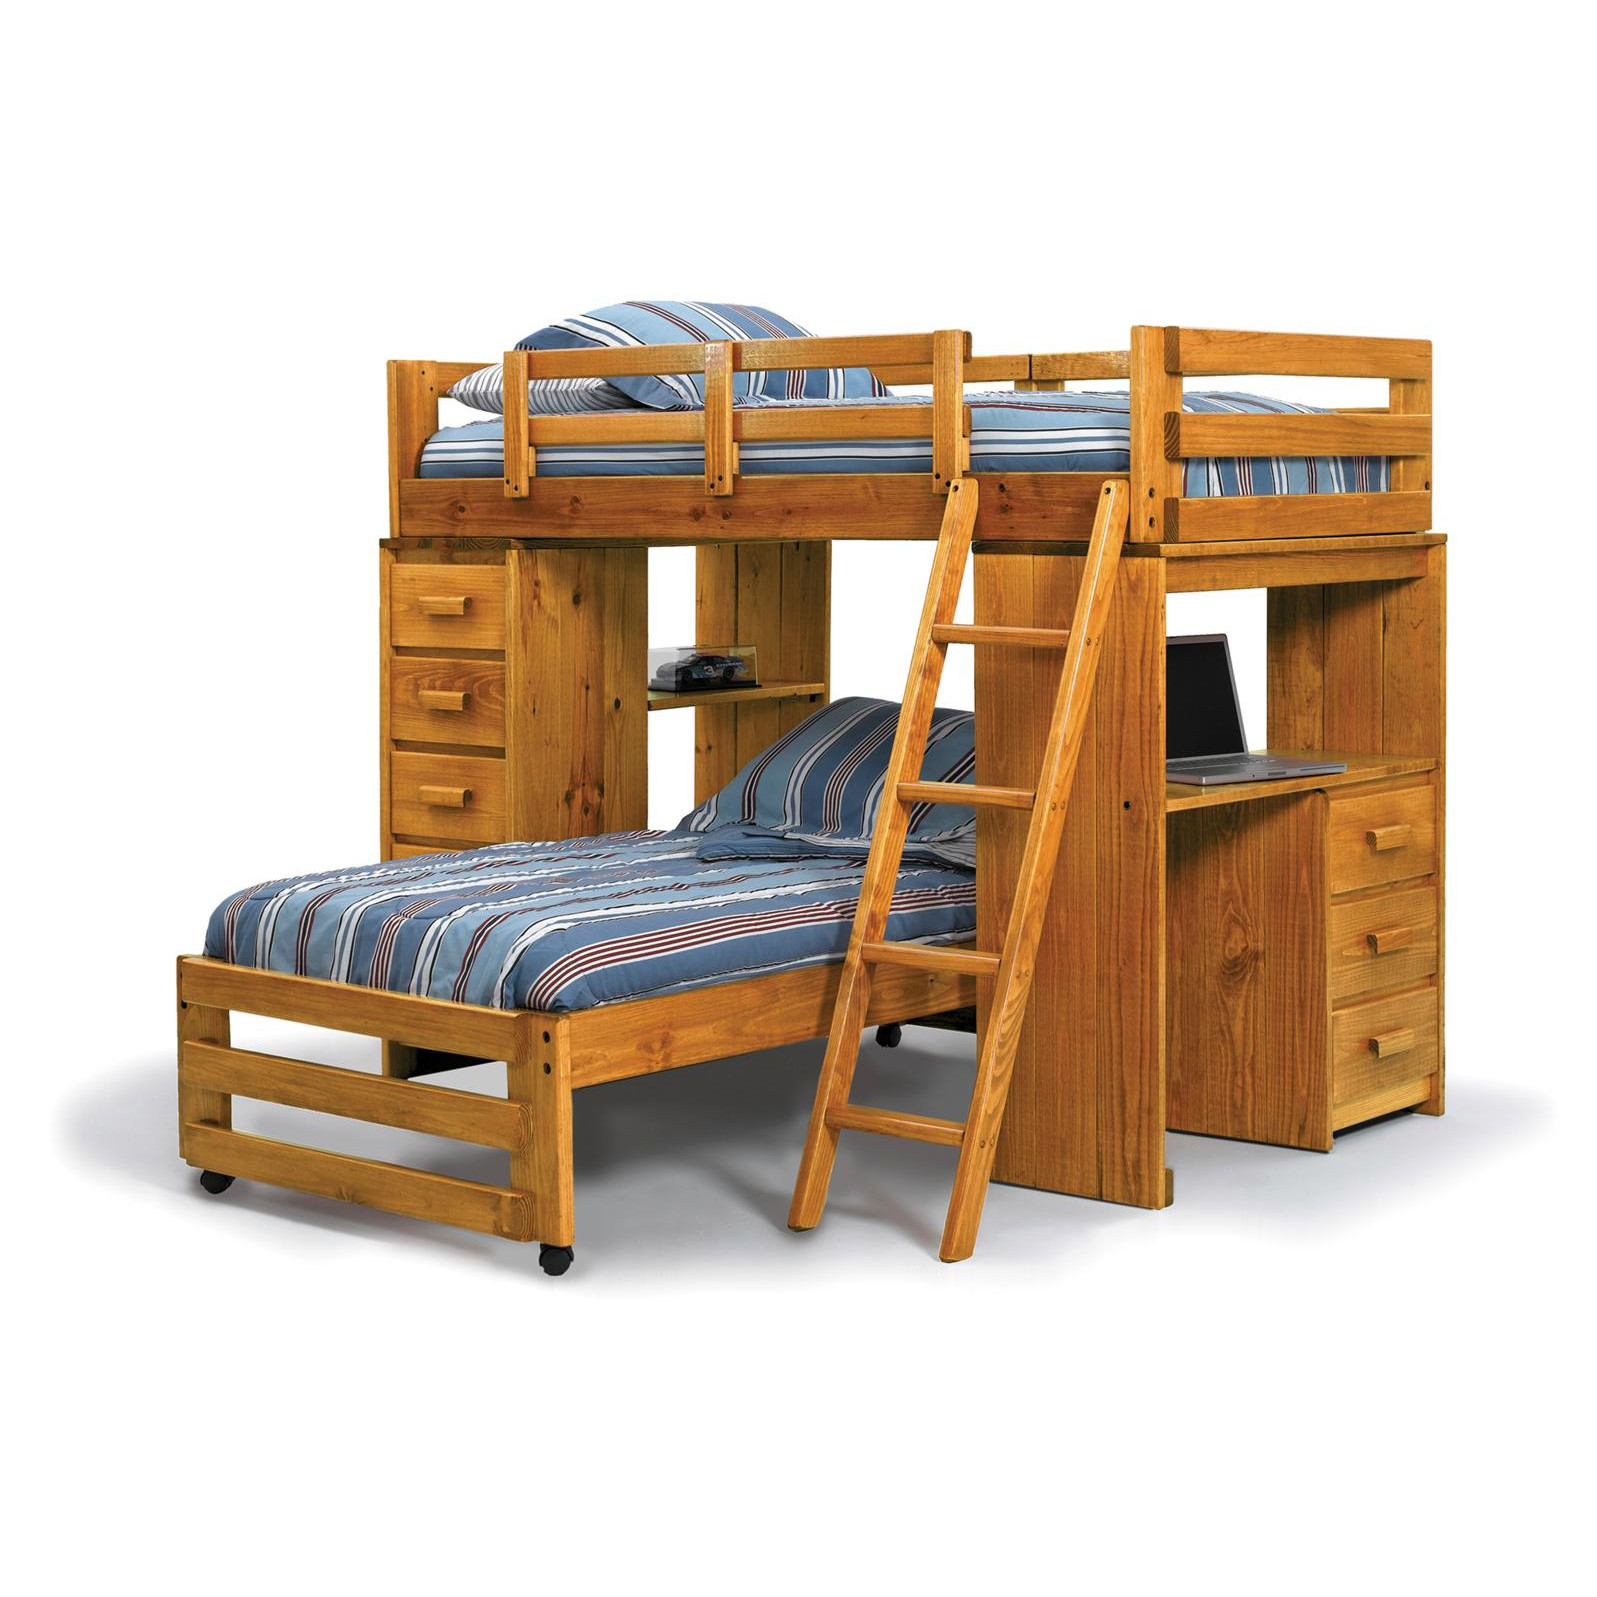 Twin Over Full Bunk Bed with Desk: Best Alternative for ...